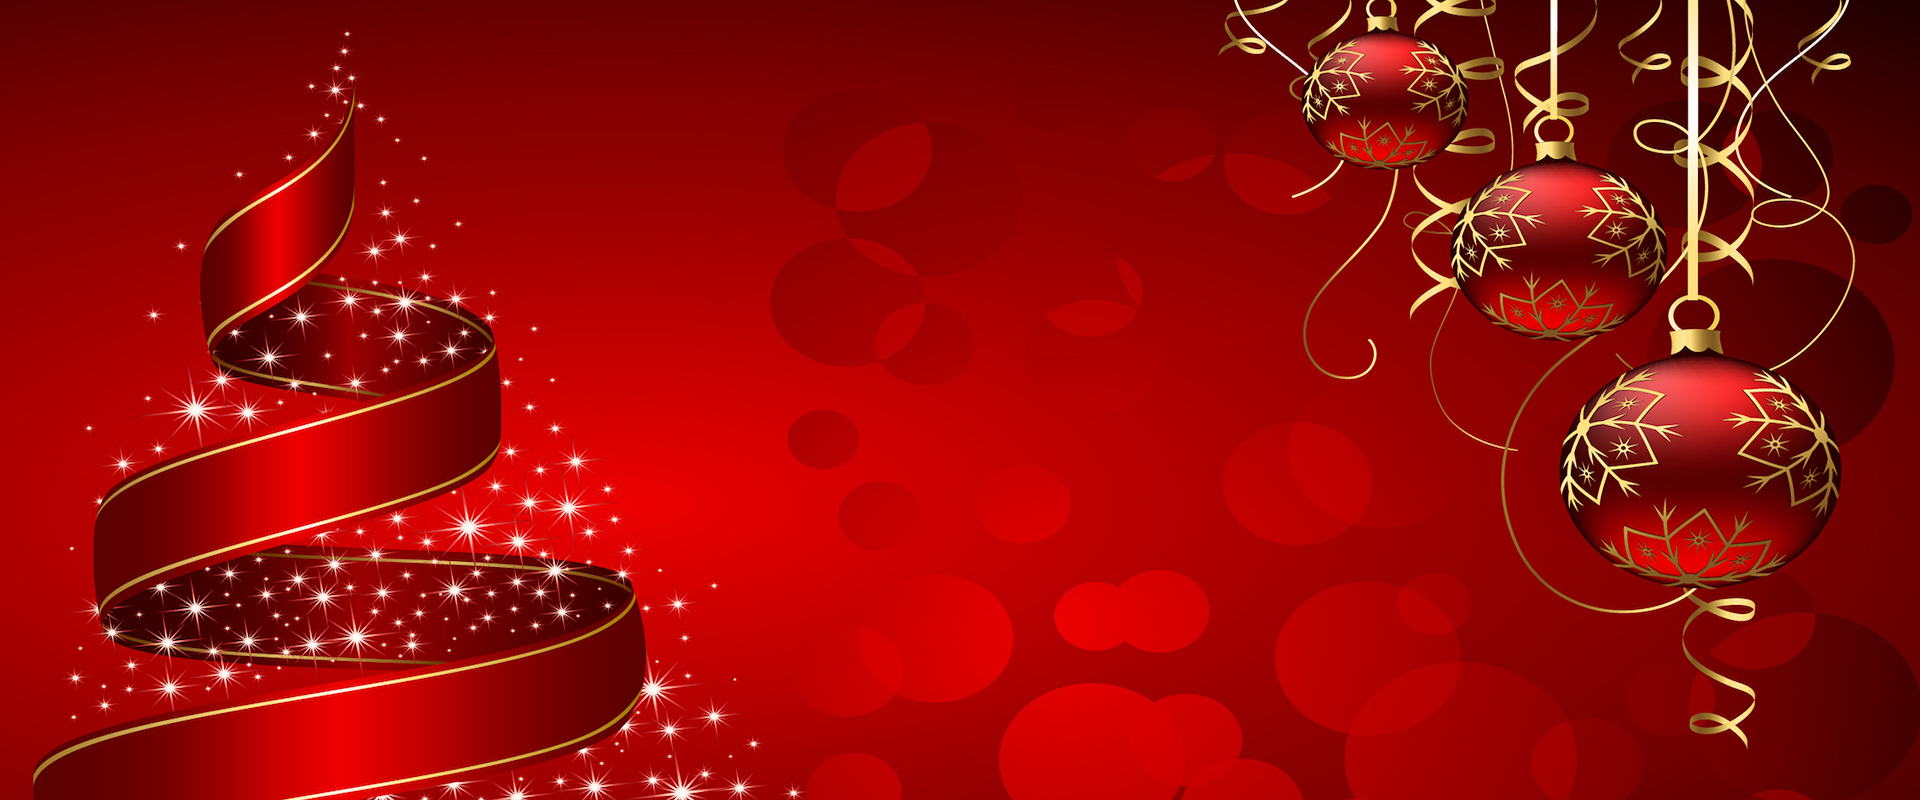 Red-Christmas-Backgrounds-4